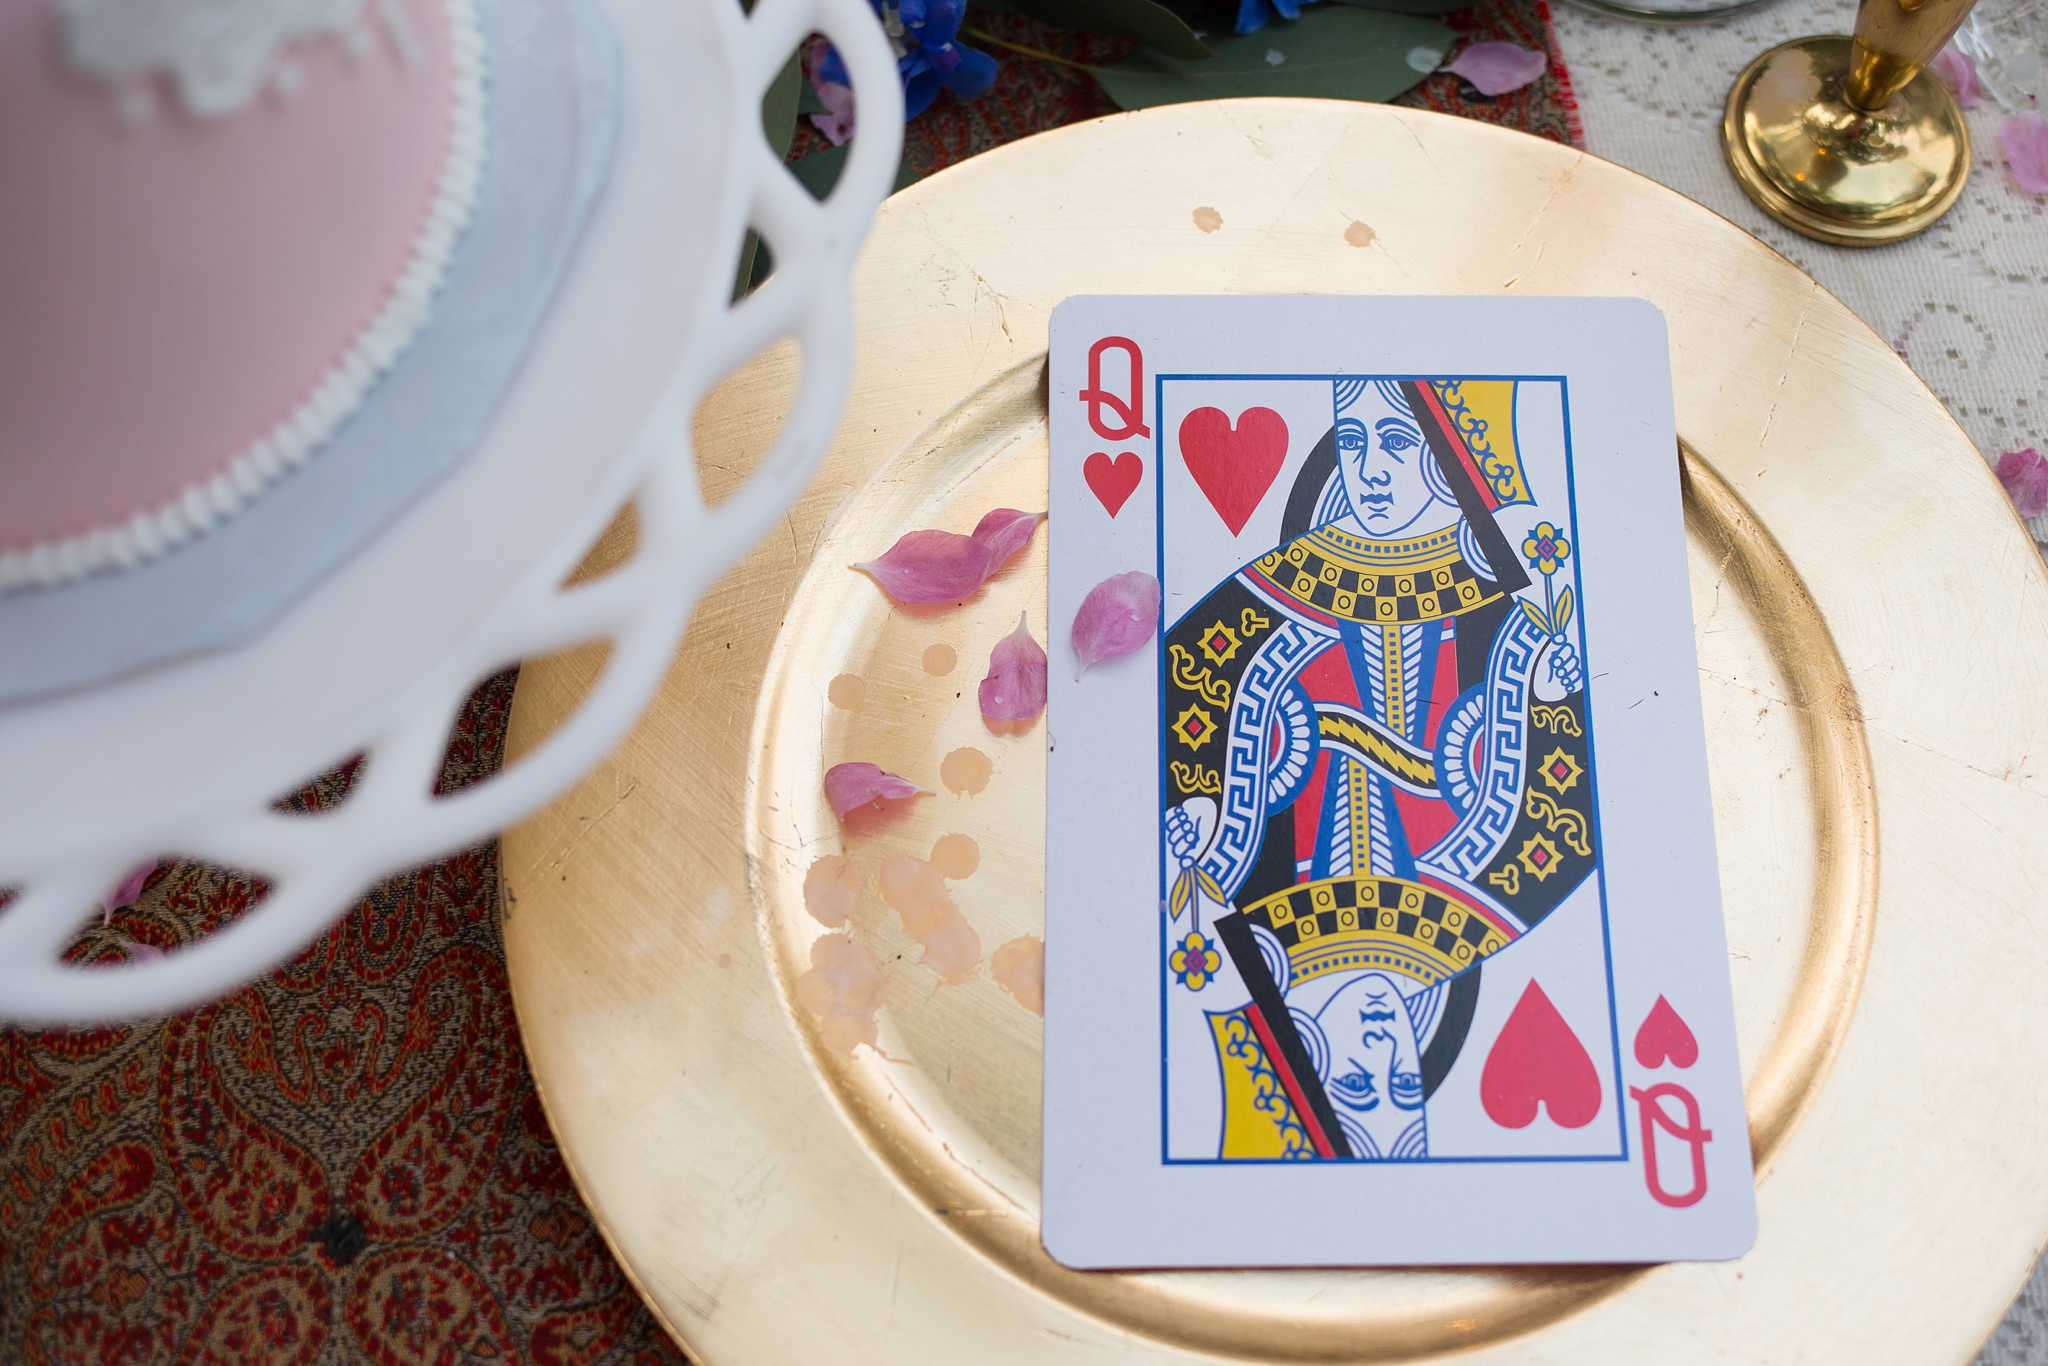 Queen-of-hearts-table-scape